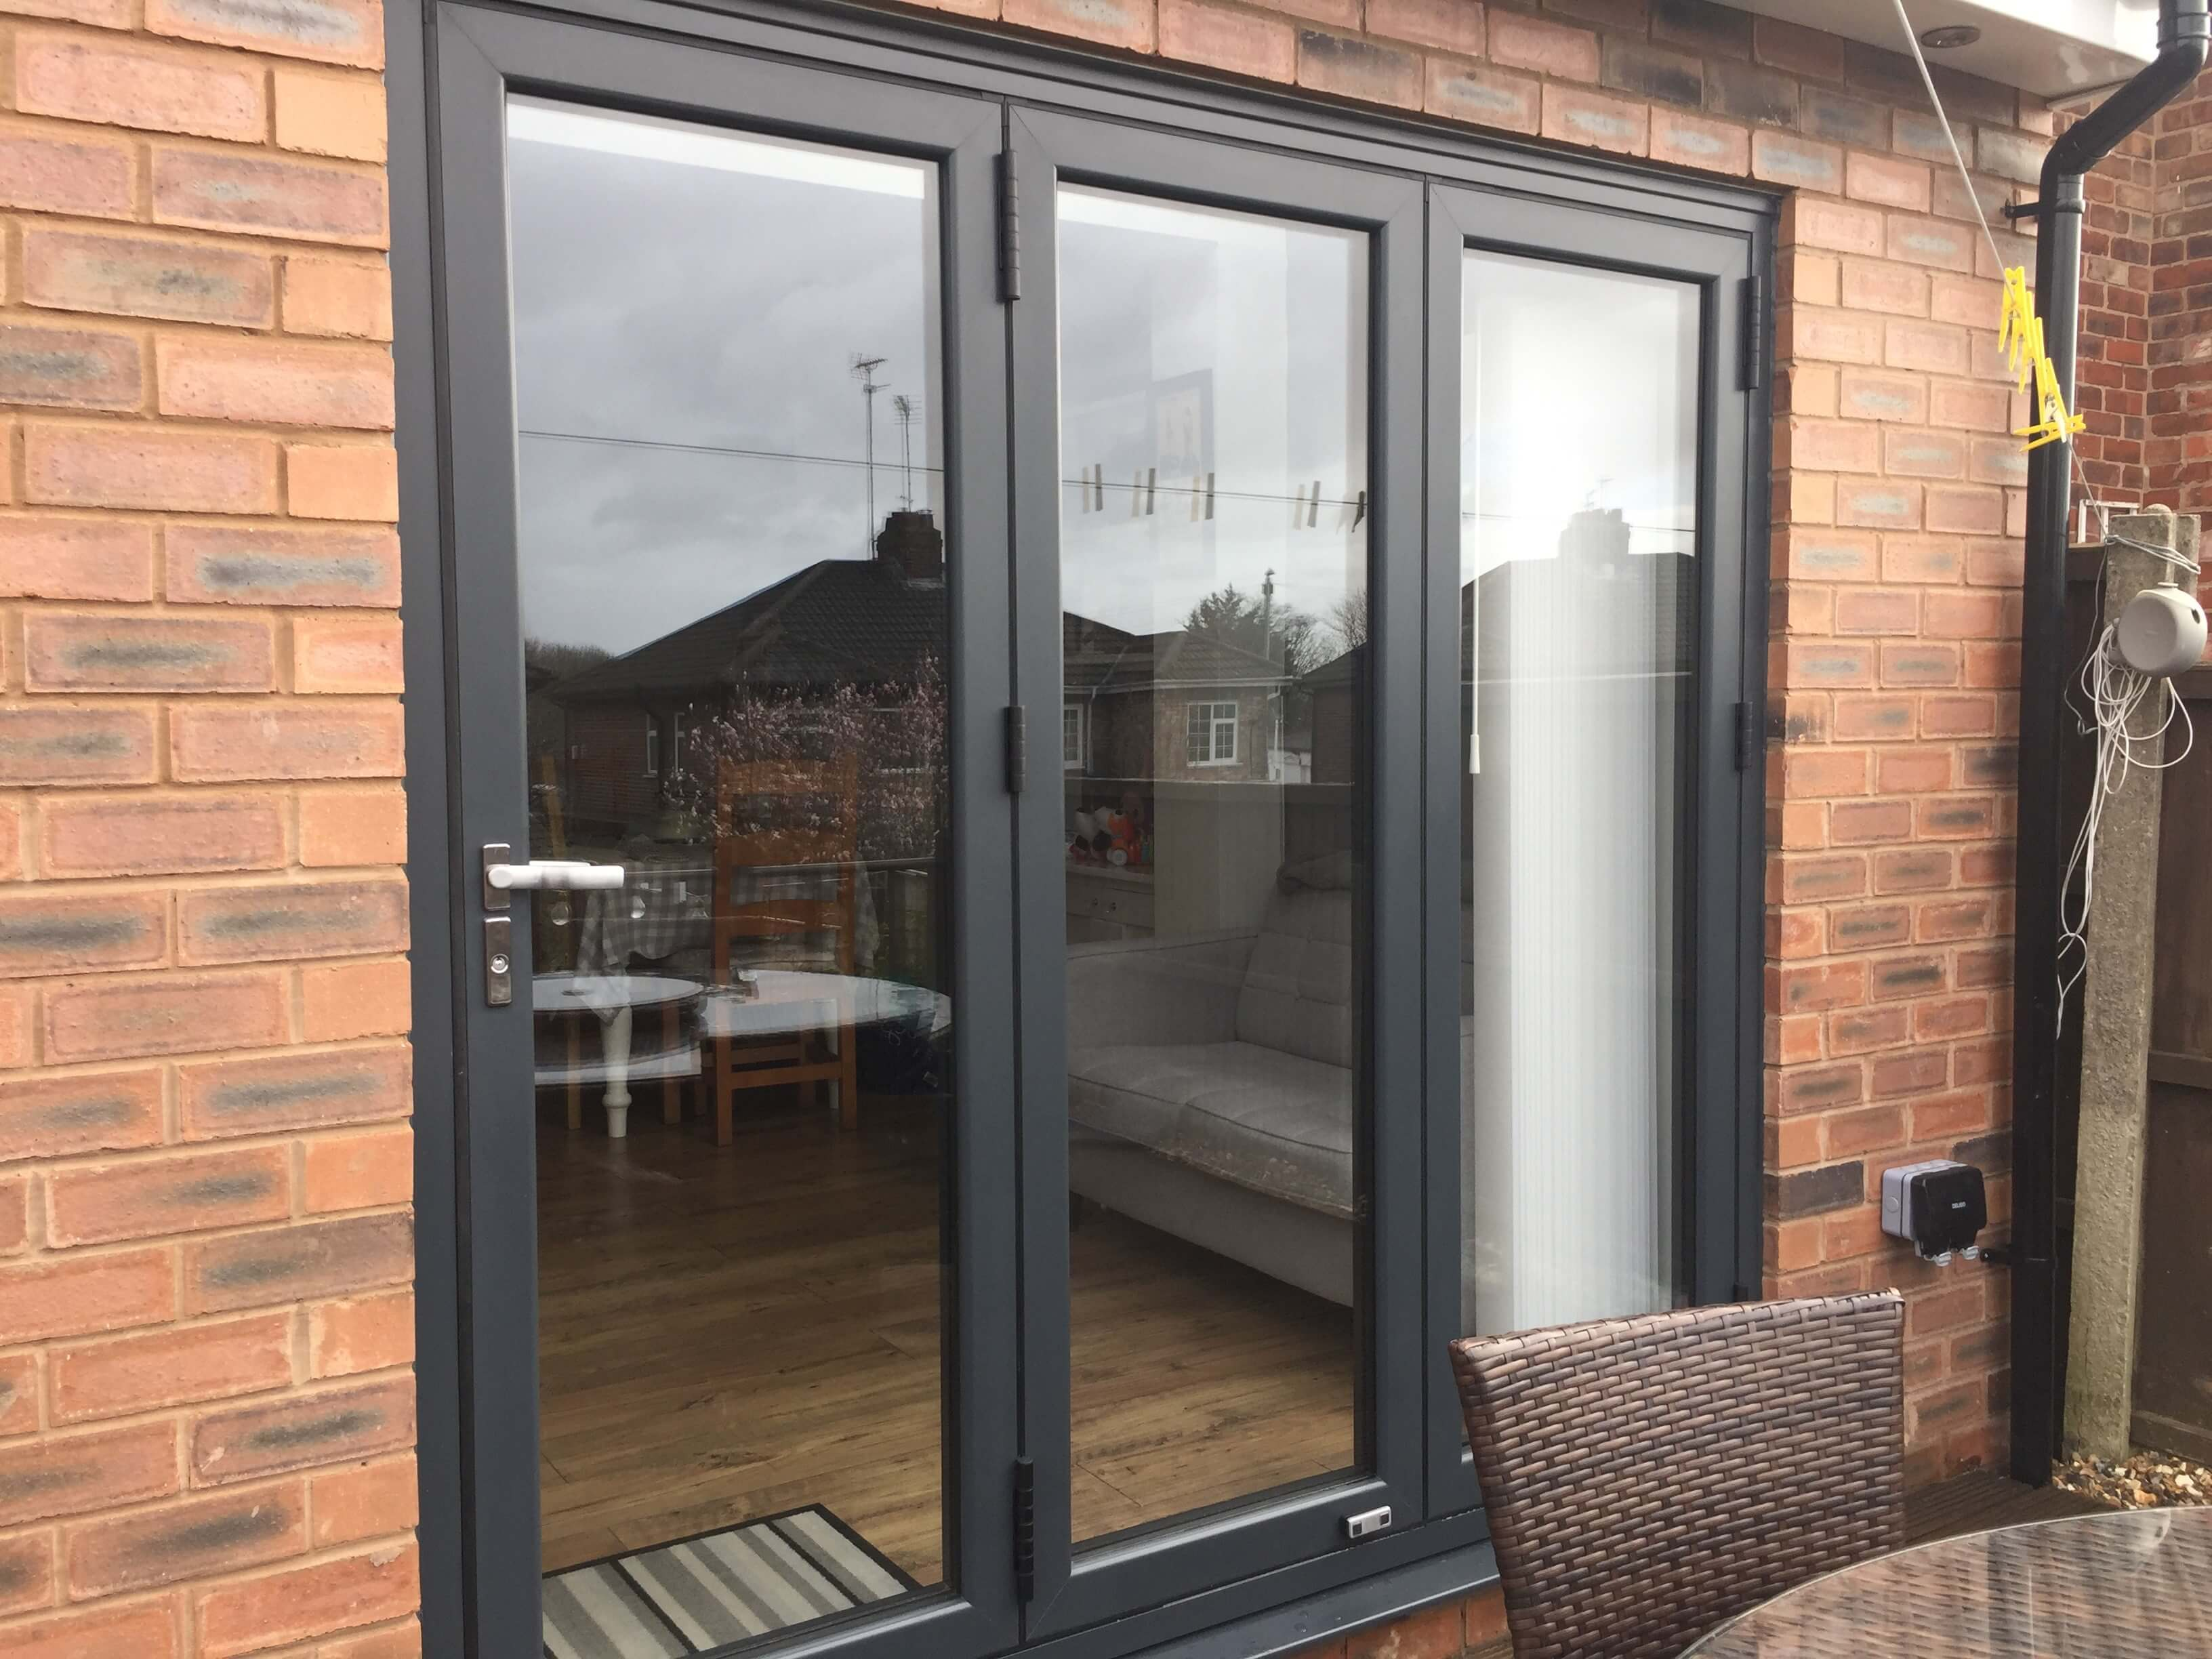 This image shows a 3 pane aluminium bi-fold door in Anthracite Grey in Formby, Merseyside.